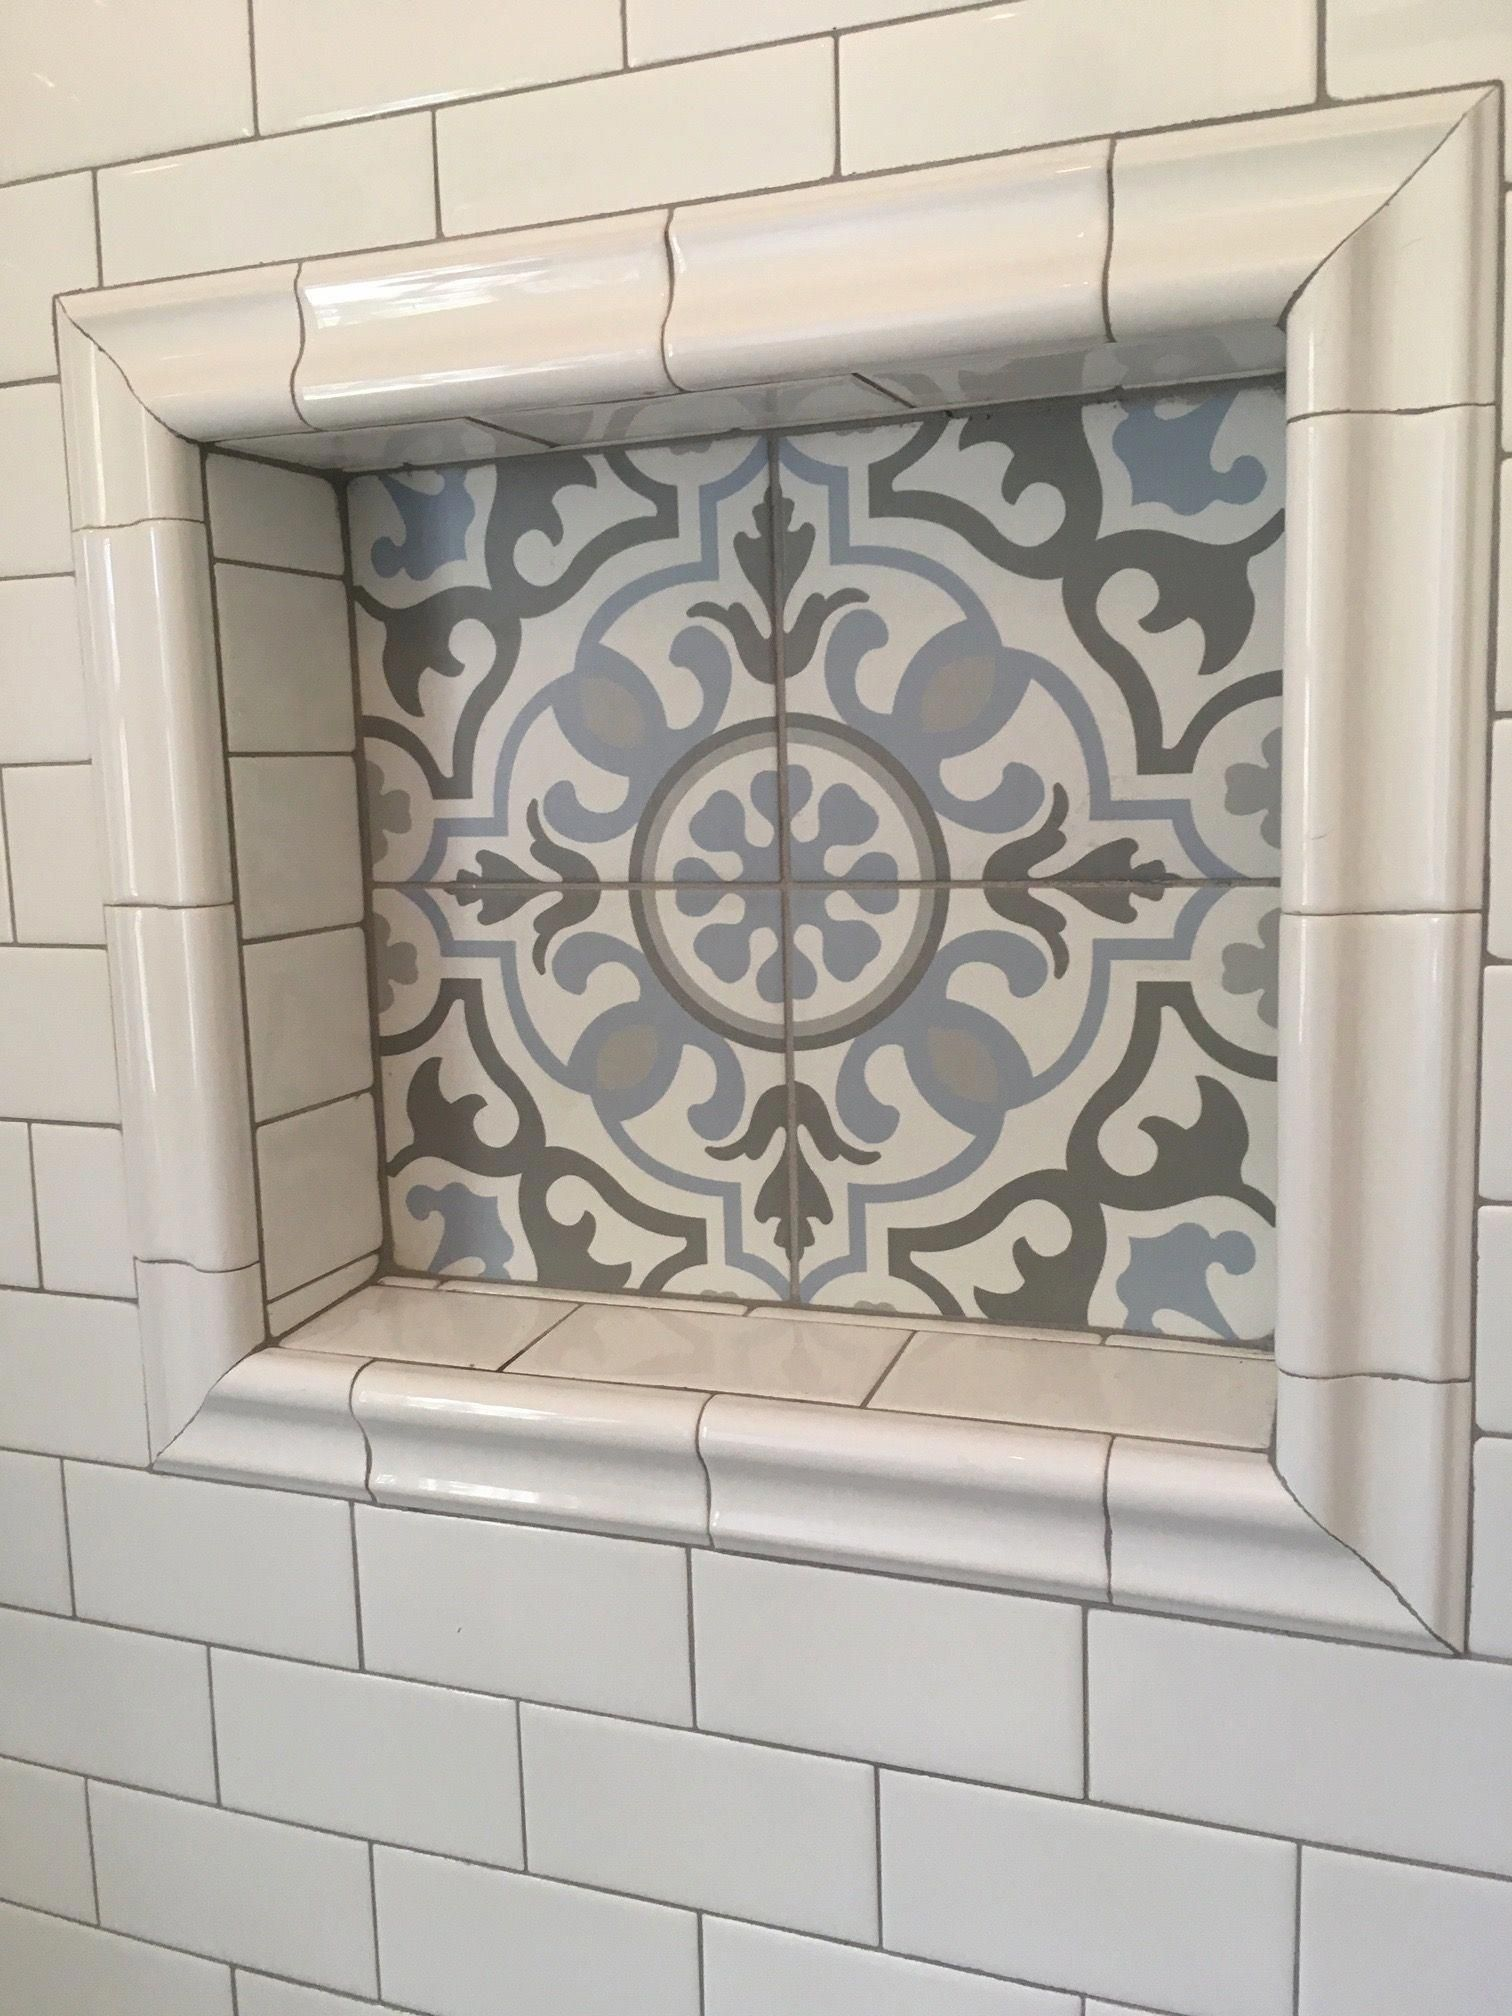 Blume Encaustic Tile Nook With Daltile White Subway Tile And Chair Rail Frame From Home Depot Bathr In 2020 Bathtub Tile Encaustic Tiles Bathroom Diy Bathroom Remodel